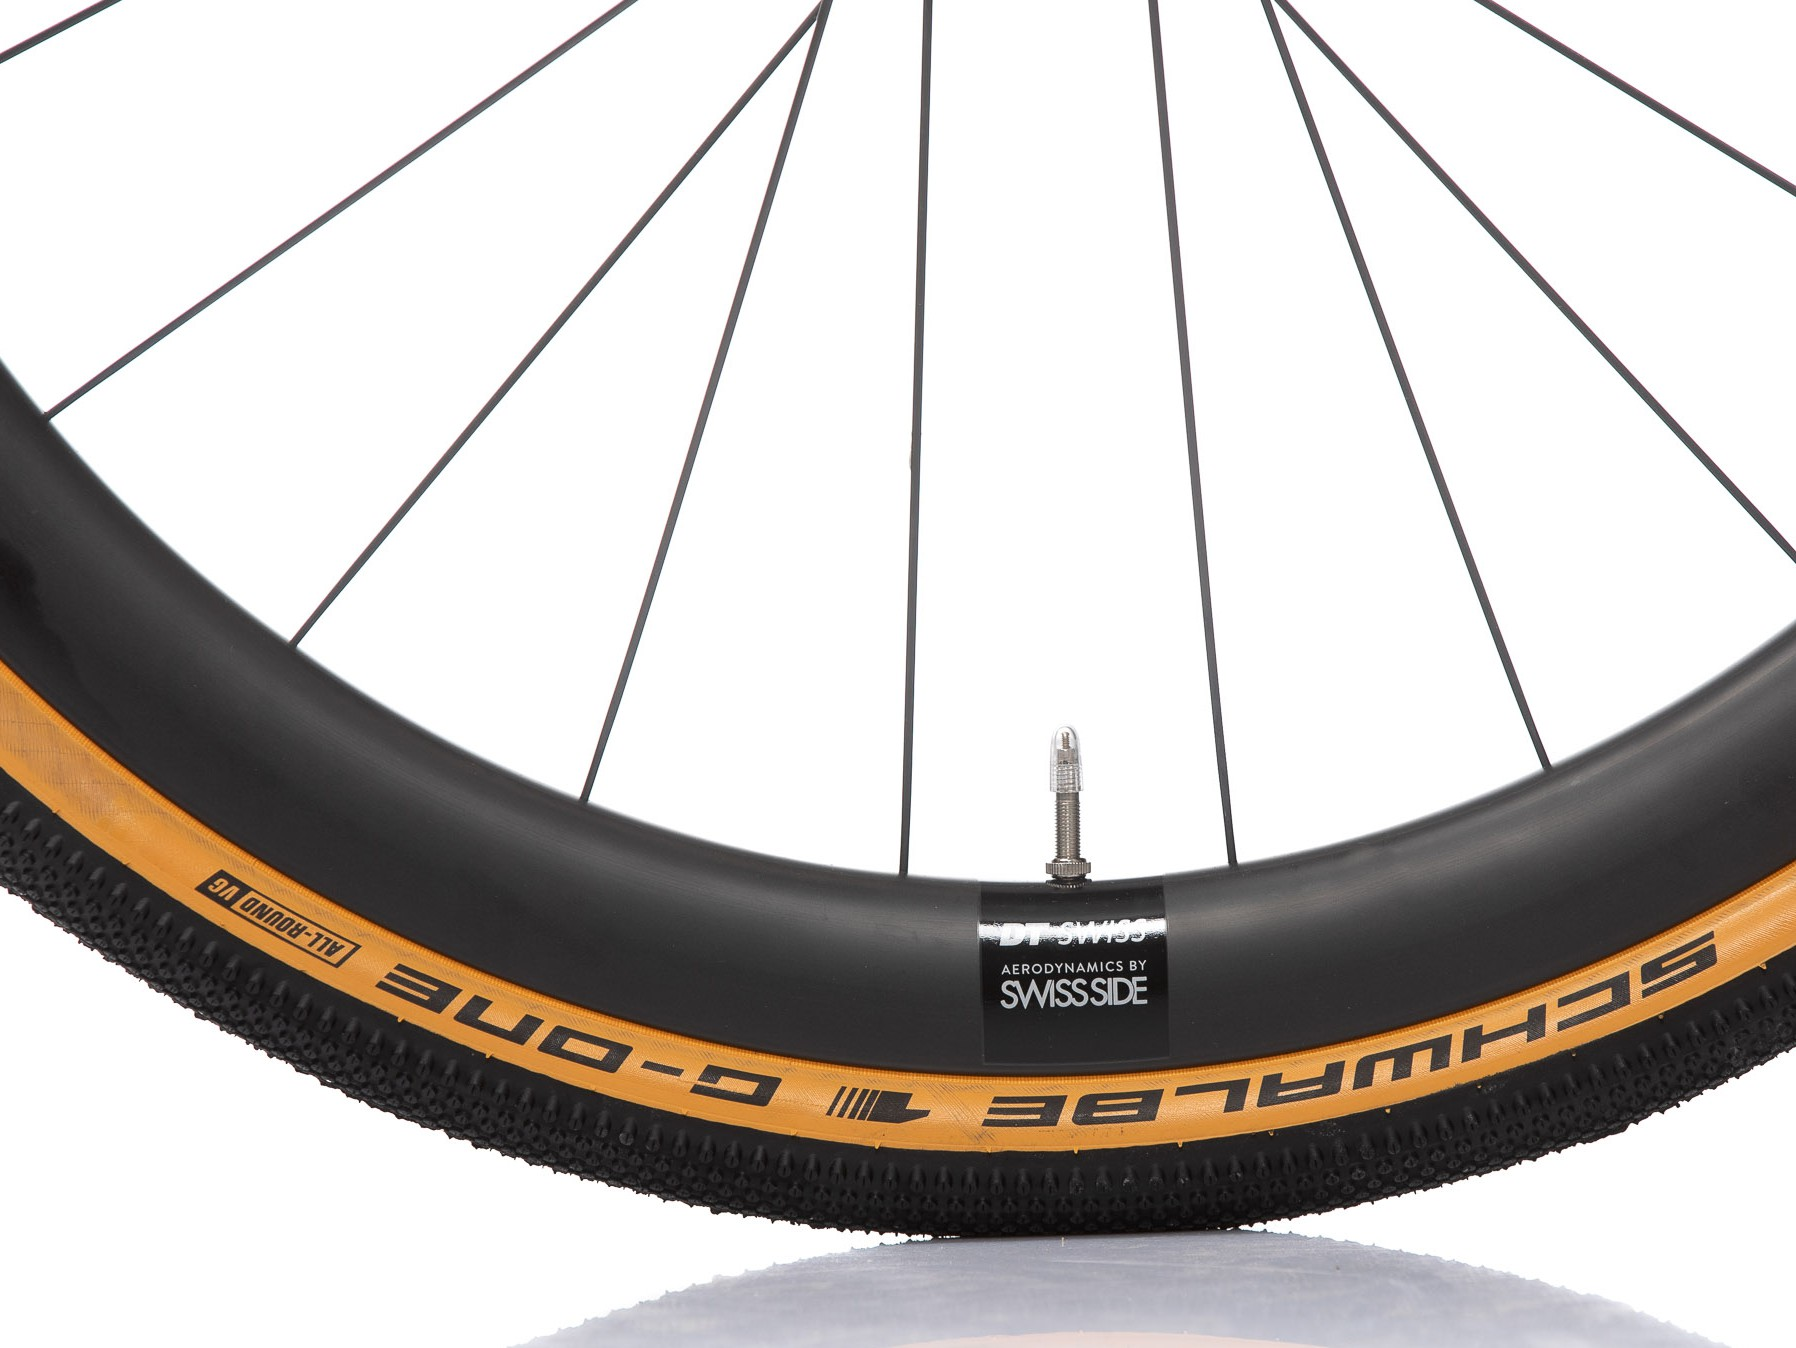 DT Swiss GRC 1400-42 mit Schwalbe G-One Allround in der Dimension 40-622